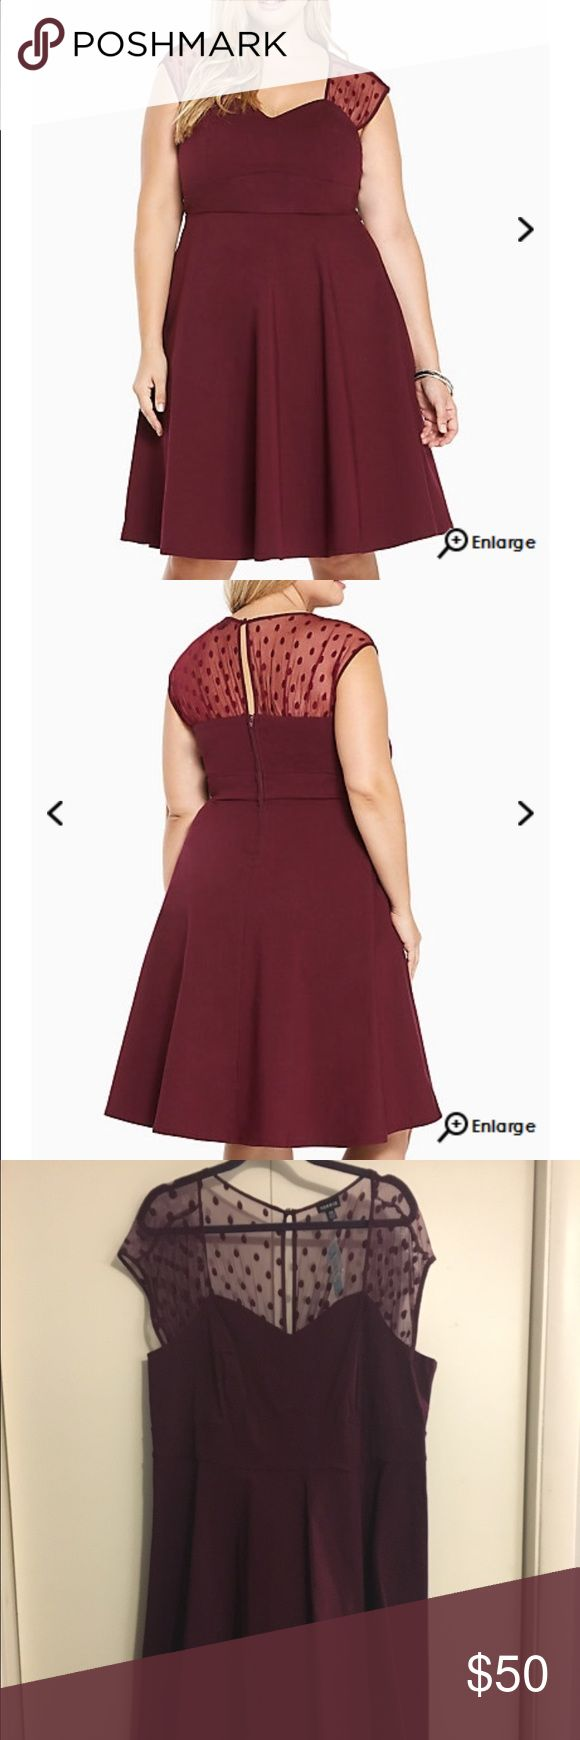 """Torrid Burgundy Dress NWT! Go ahead, do a spin; this dress deserves it. The burgundy knit body is endlessly stretchy, and totally figure defining with a fit-'n'-flare silhouette. A polka dot mesh inset is a total throwback touch that takes the swing style to the next level. Length 43.5"""" torrid Dresses"""